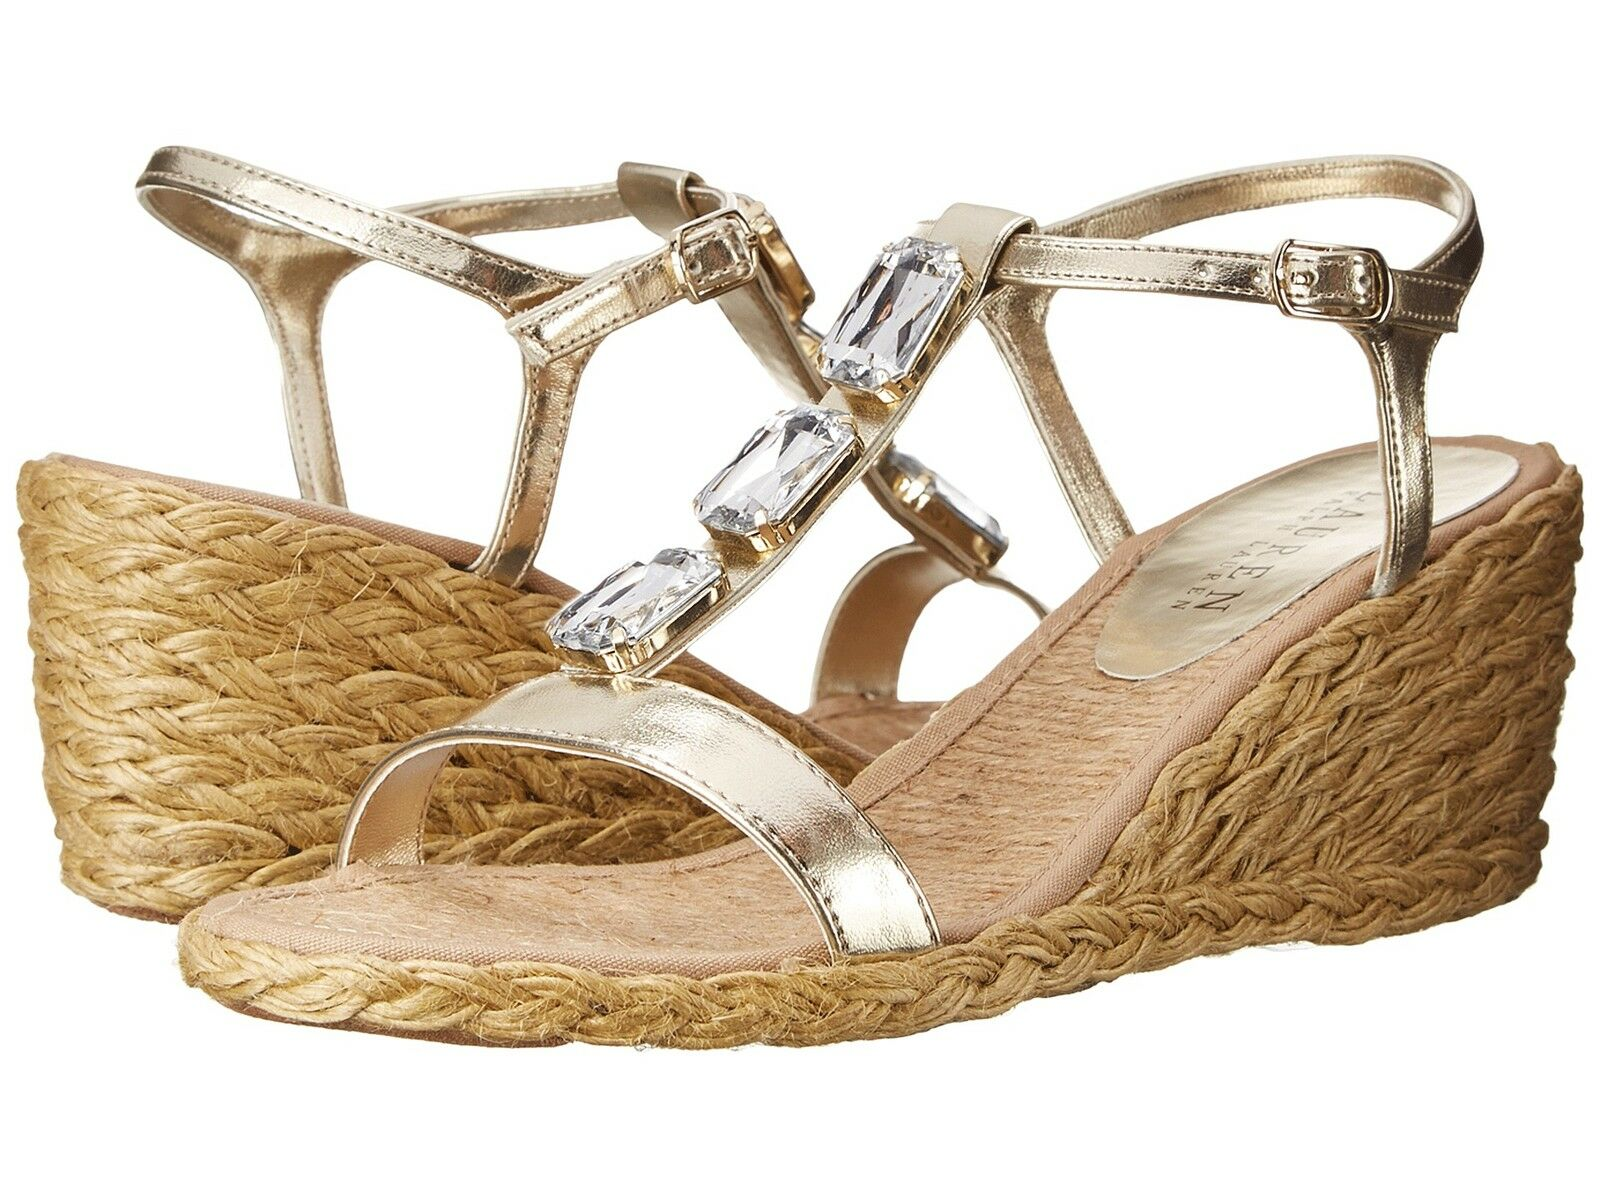 RALPH LAUREN CORALA PLATINO WOMENS WEDGES SANDALS SHOES MULTISIZES AS